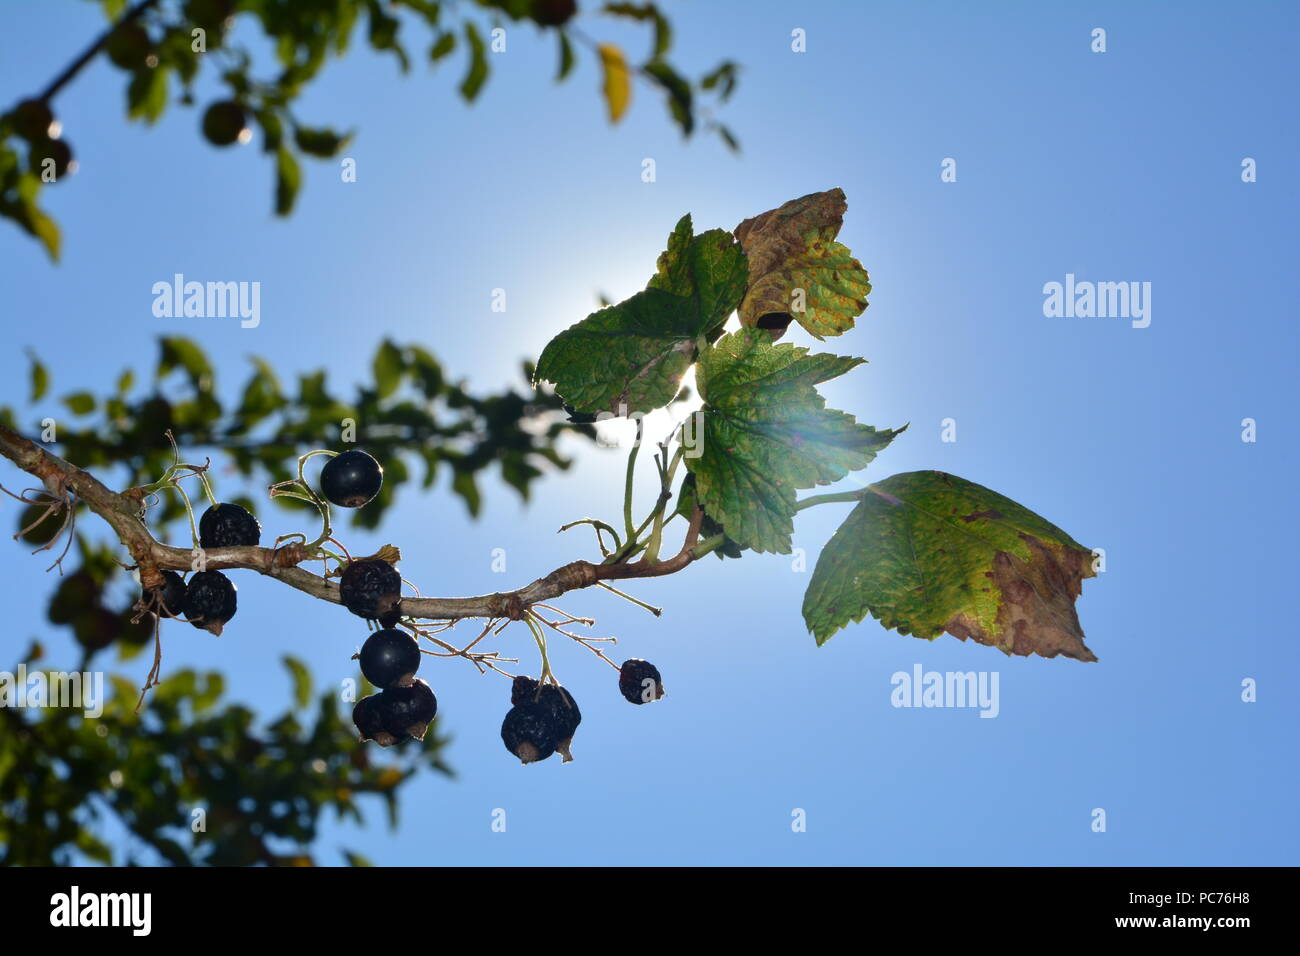 Black dried berries with brown leaves on the branch in front of blue sky with sun - Stock Image